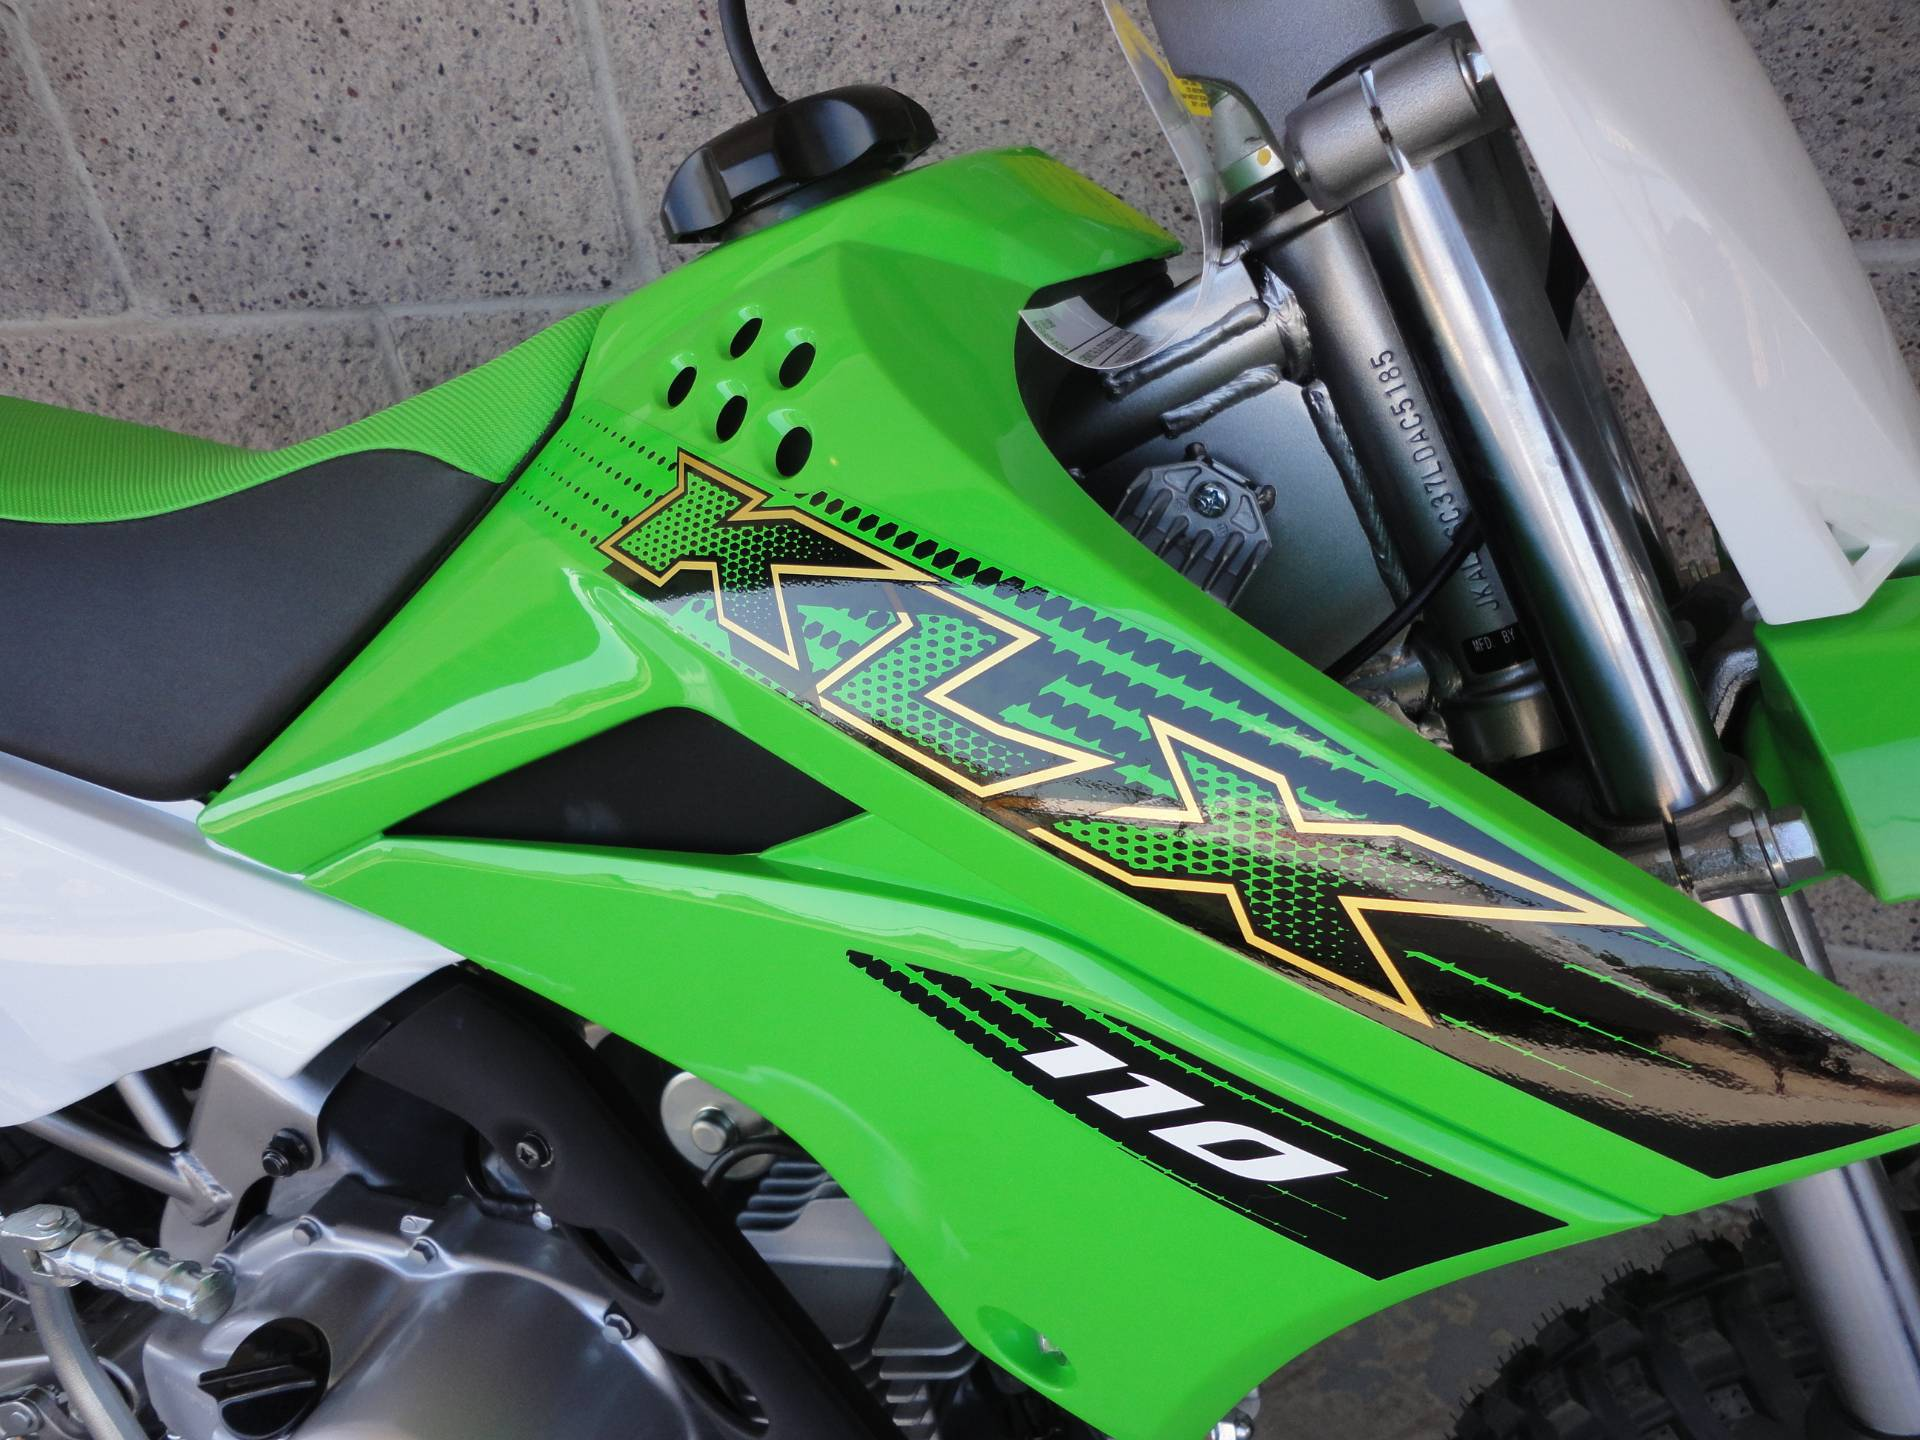 2020 Kawasaki KLX 110 in Denver, Colorado - Photo 14